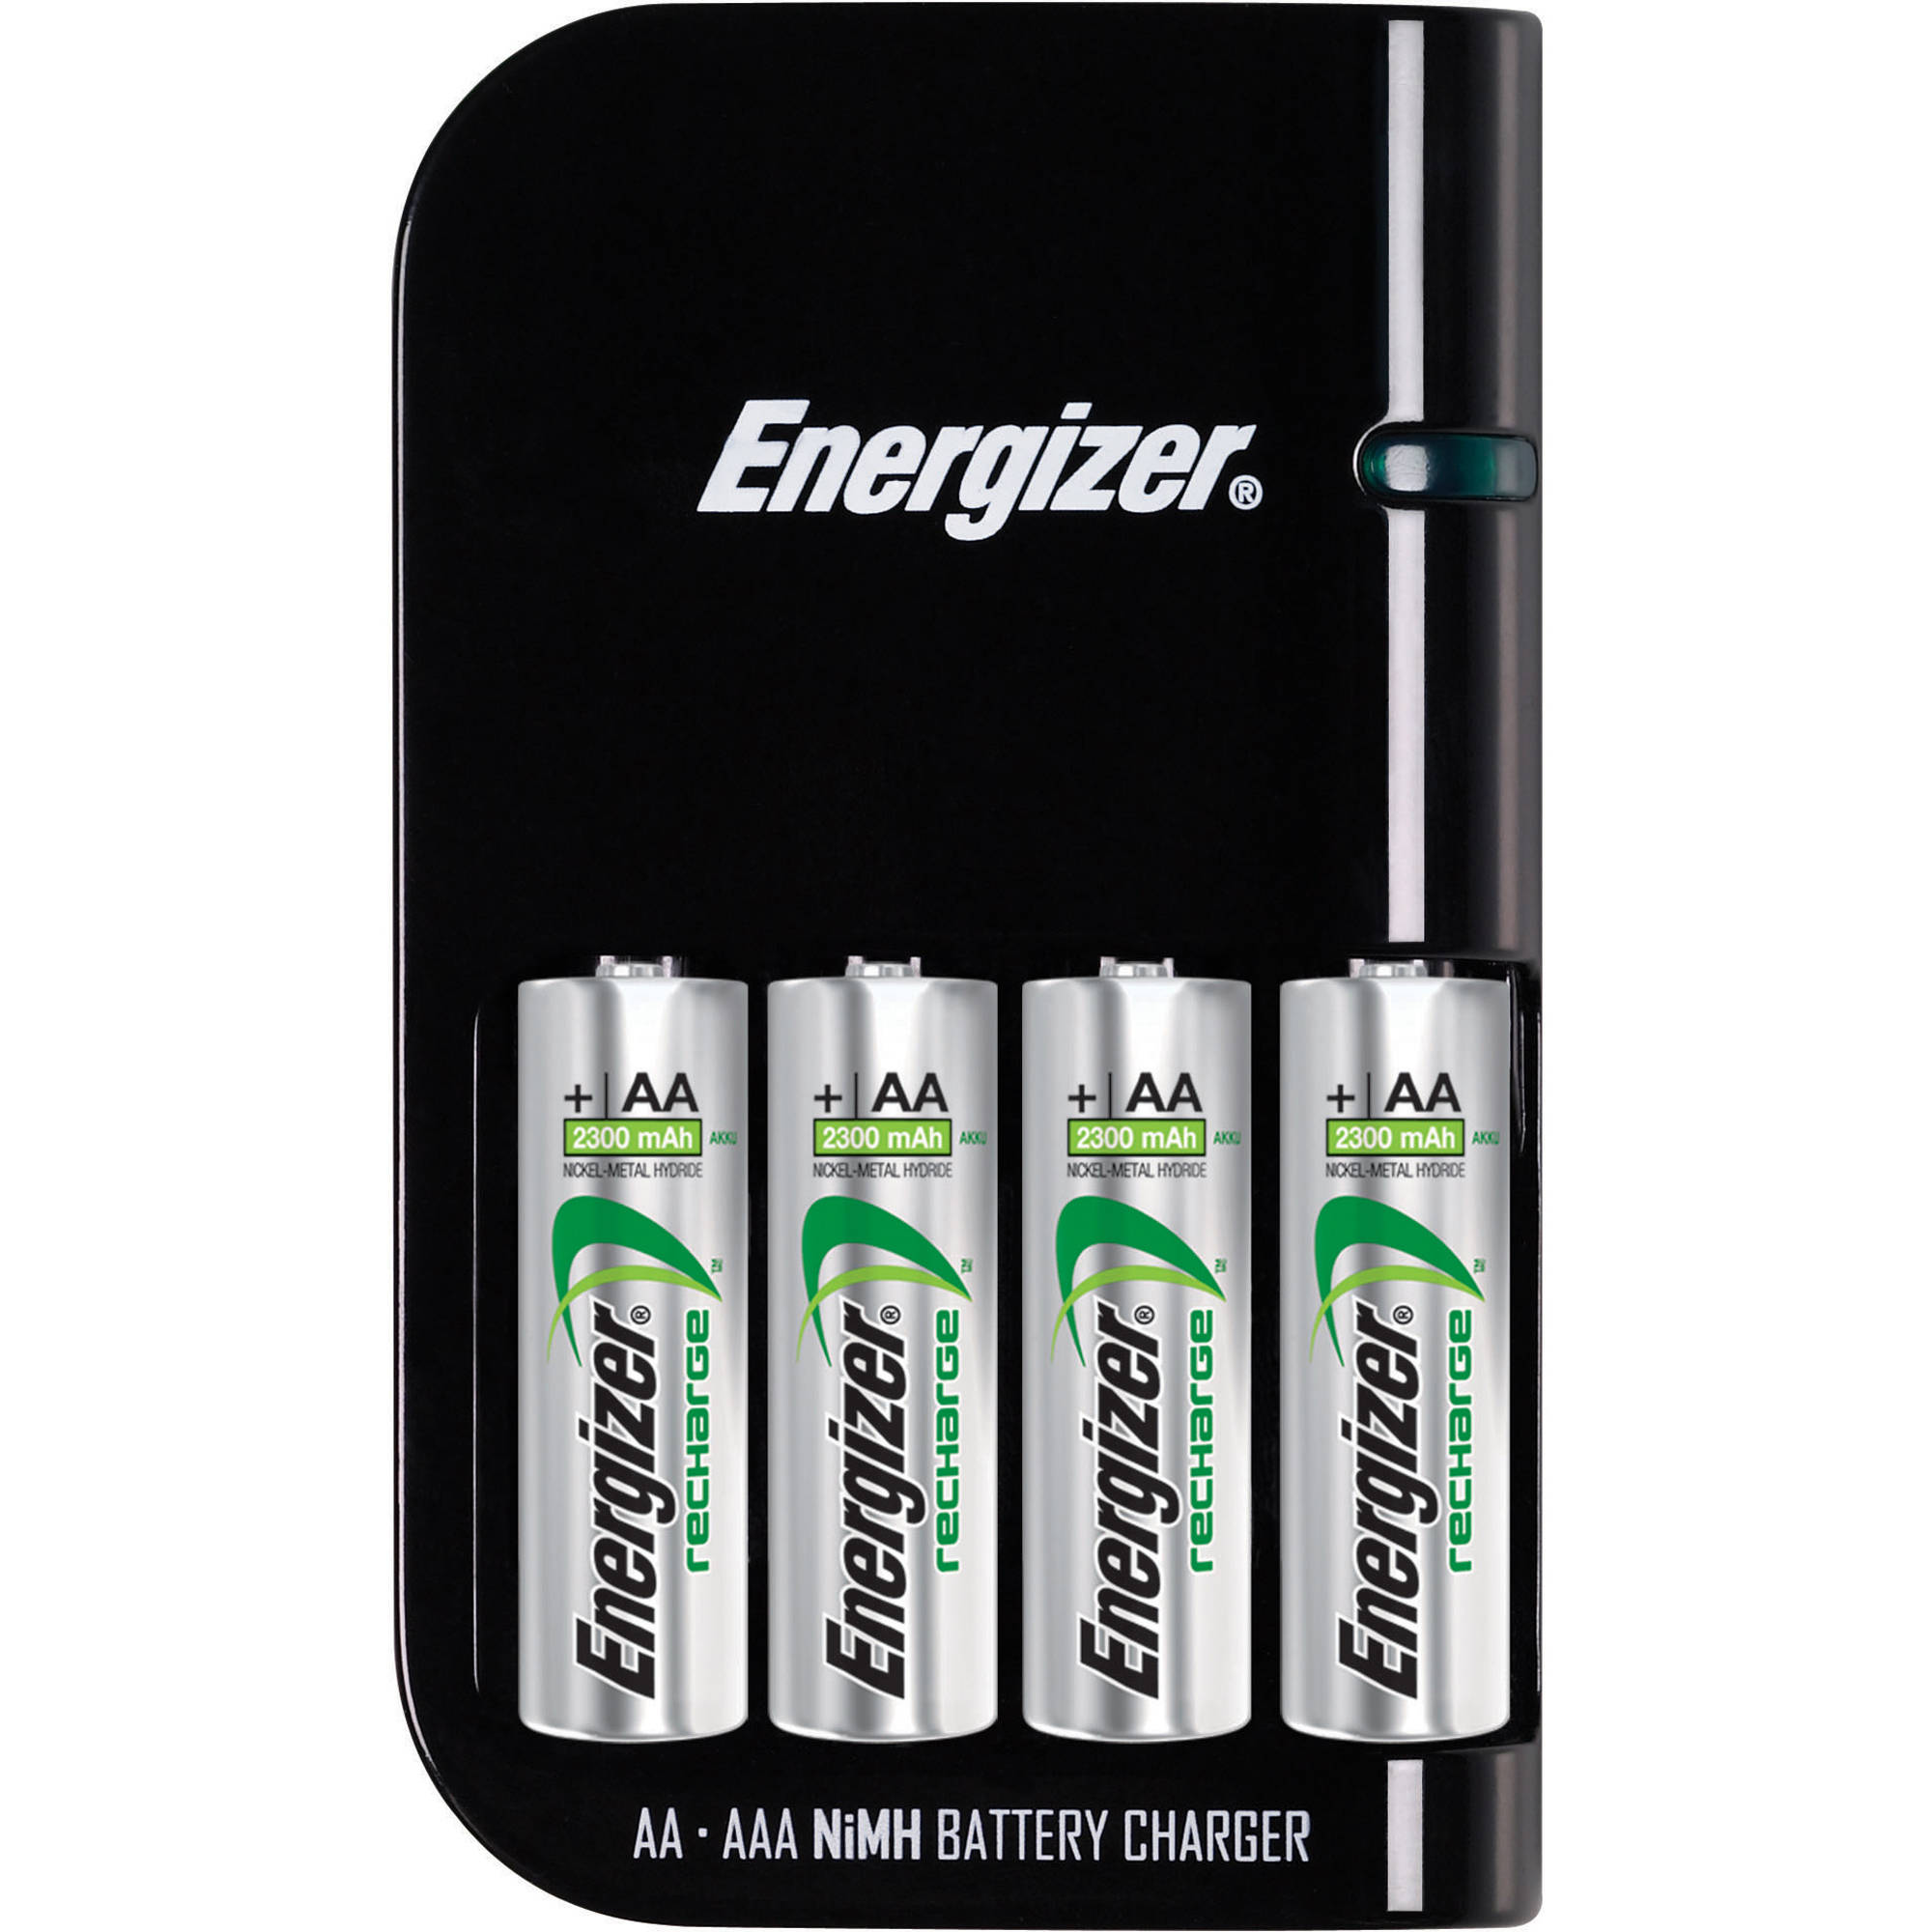 Energizer Rapid Battery Charger with 4 AA Batteries